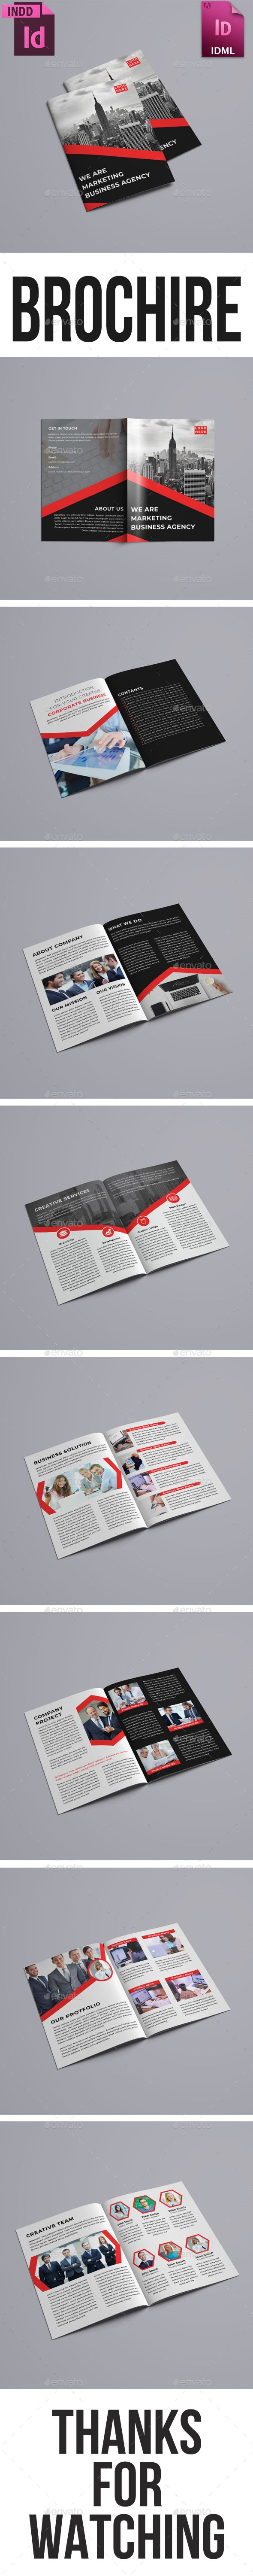 Brochure - Brochures Print Templates. brochure templates psd brochure templates free download brochure templates word free tri fold brochure templates.business brochure templates psd free download creative brochure design psd brochure design templates free download.brochure design psd free download free brochure templates psd files front and back creative brochure design pdf free download.free brochure templates for word free tri fold brochure templates..